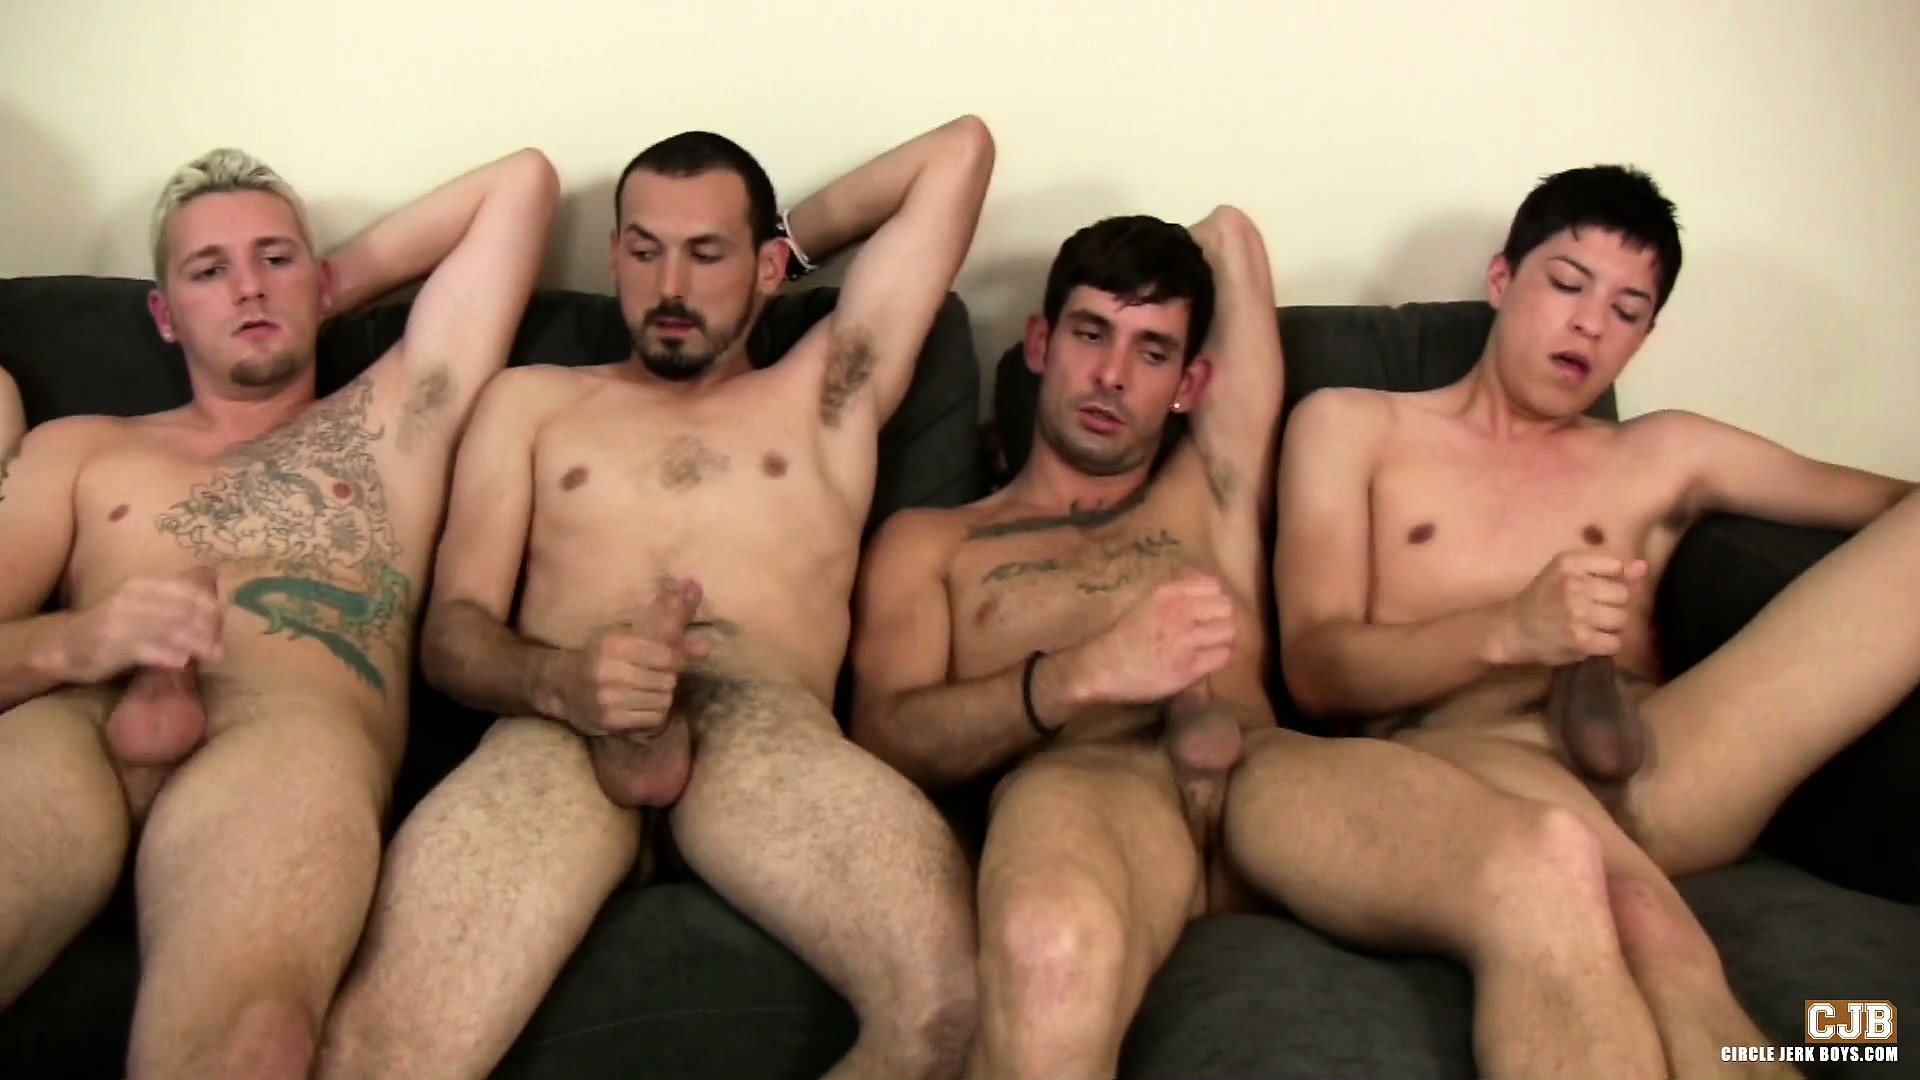 Porno Video of These Dudes Are Playing A Form Of Circle Jerk While One Dude Waits